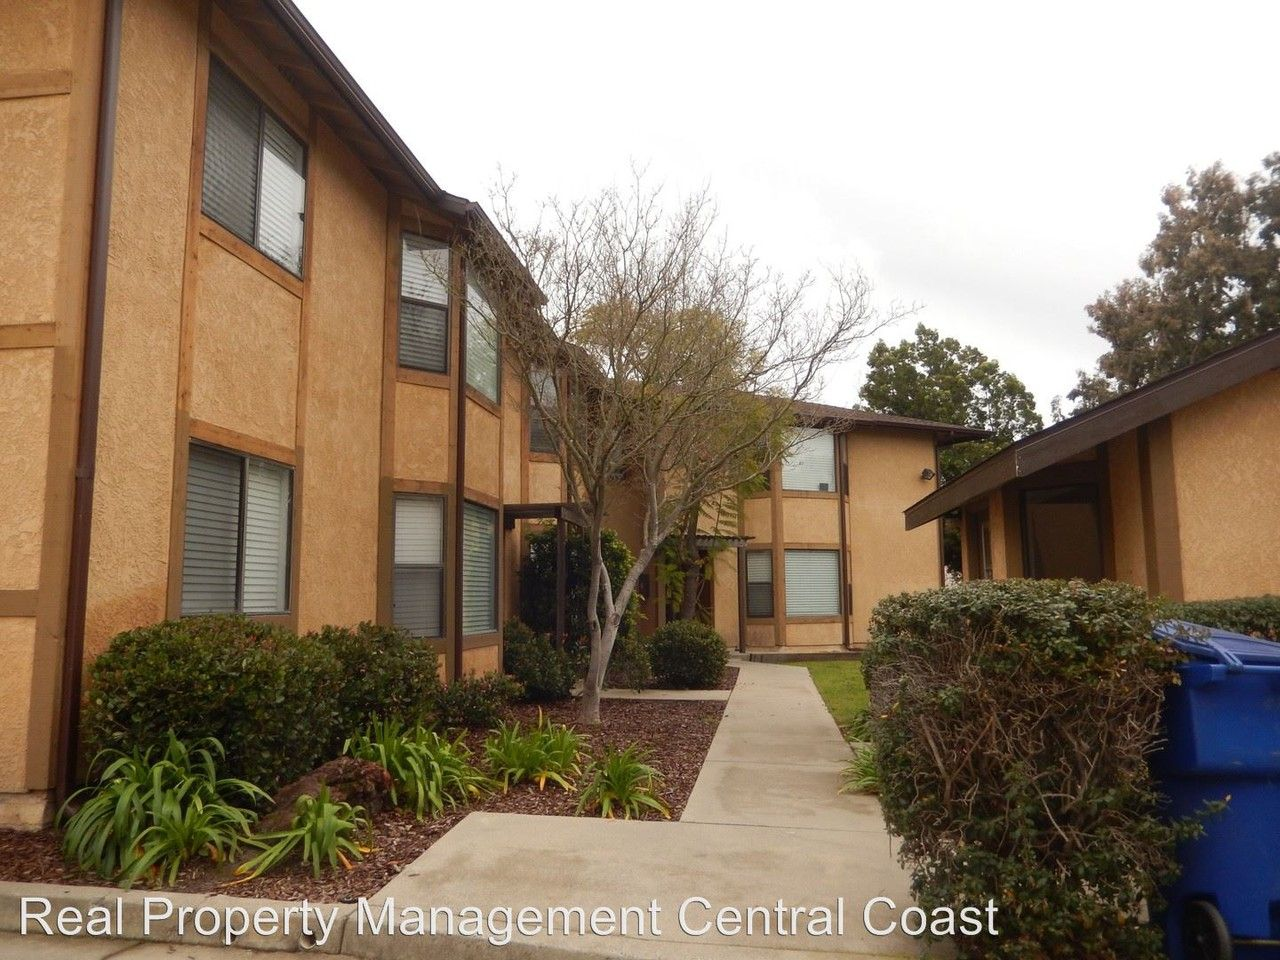 1095 Orcutt Road Apartments for Rent - 1095 Orcutt Rd, San